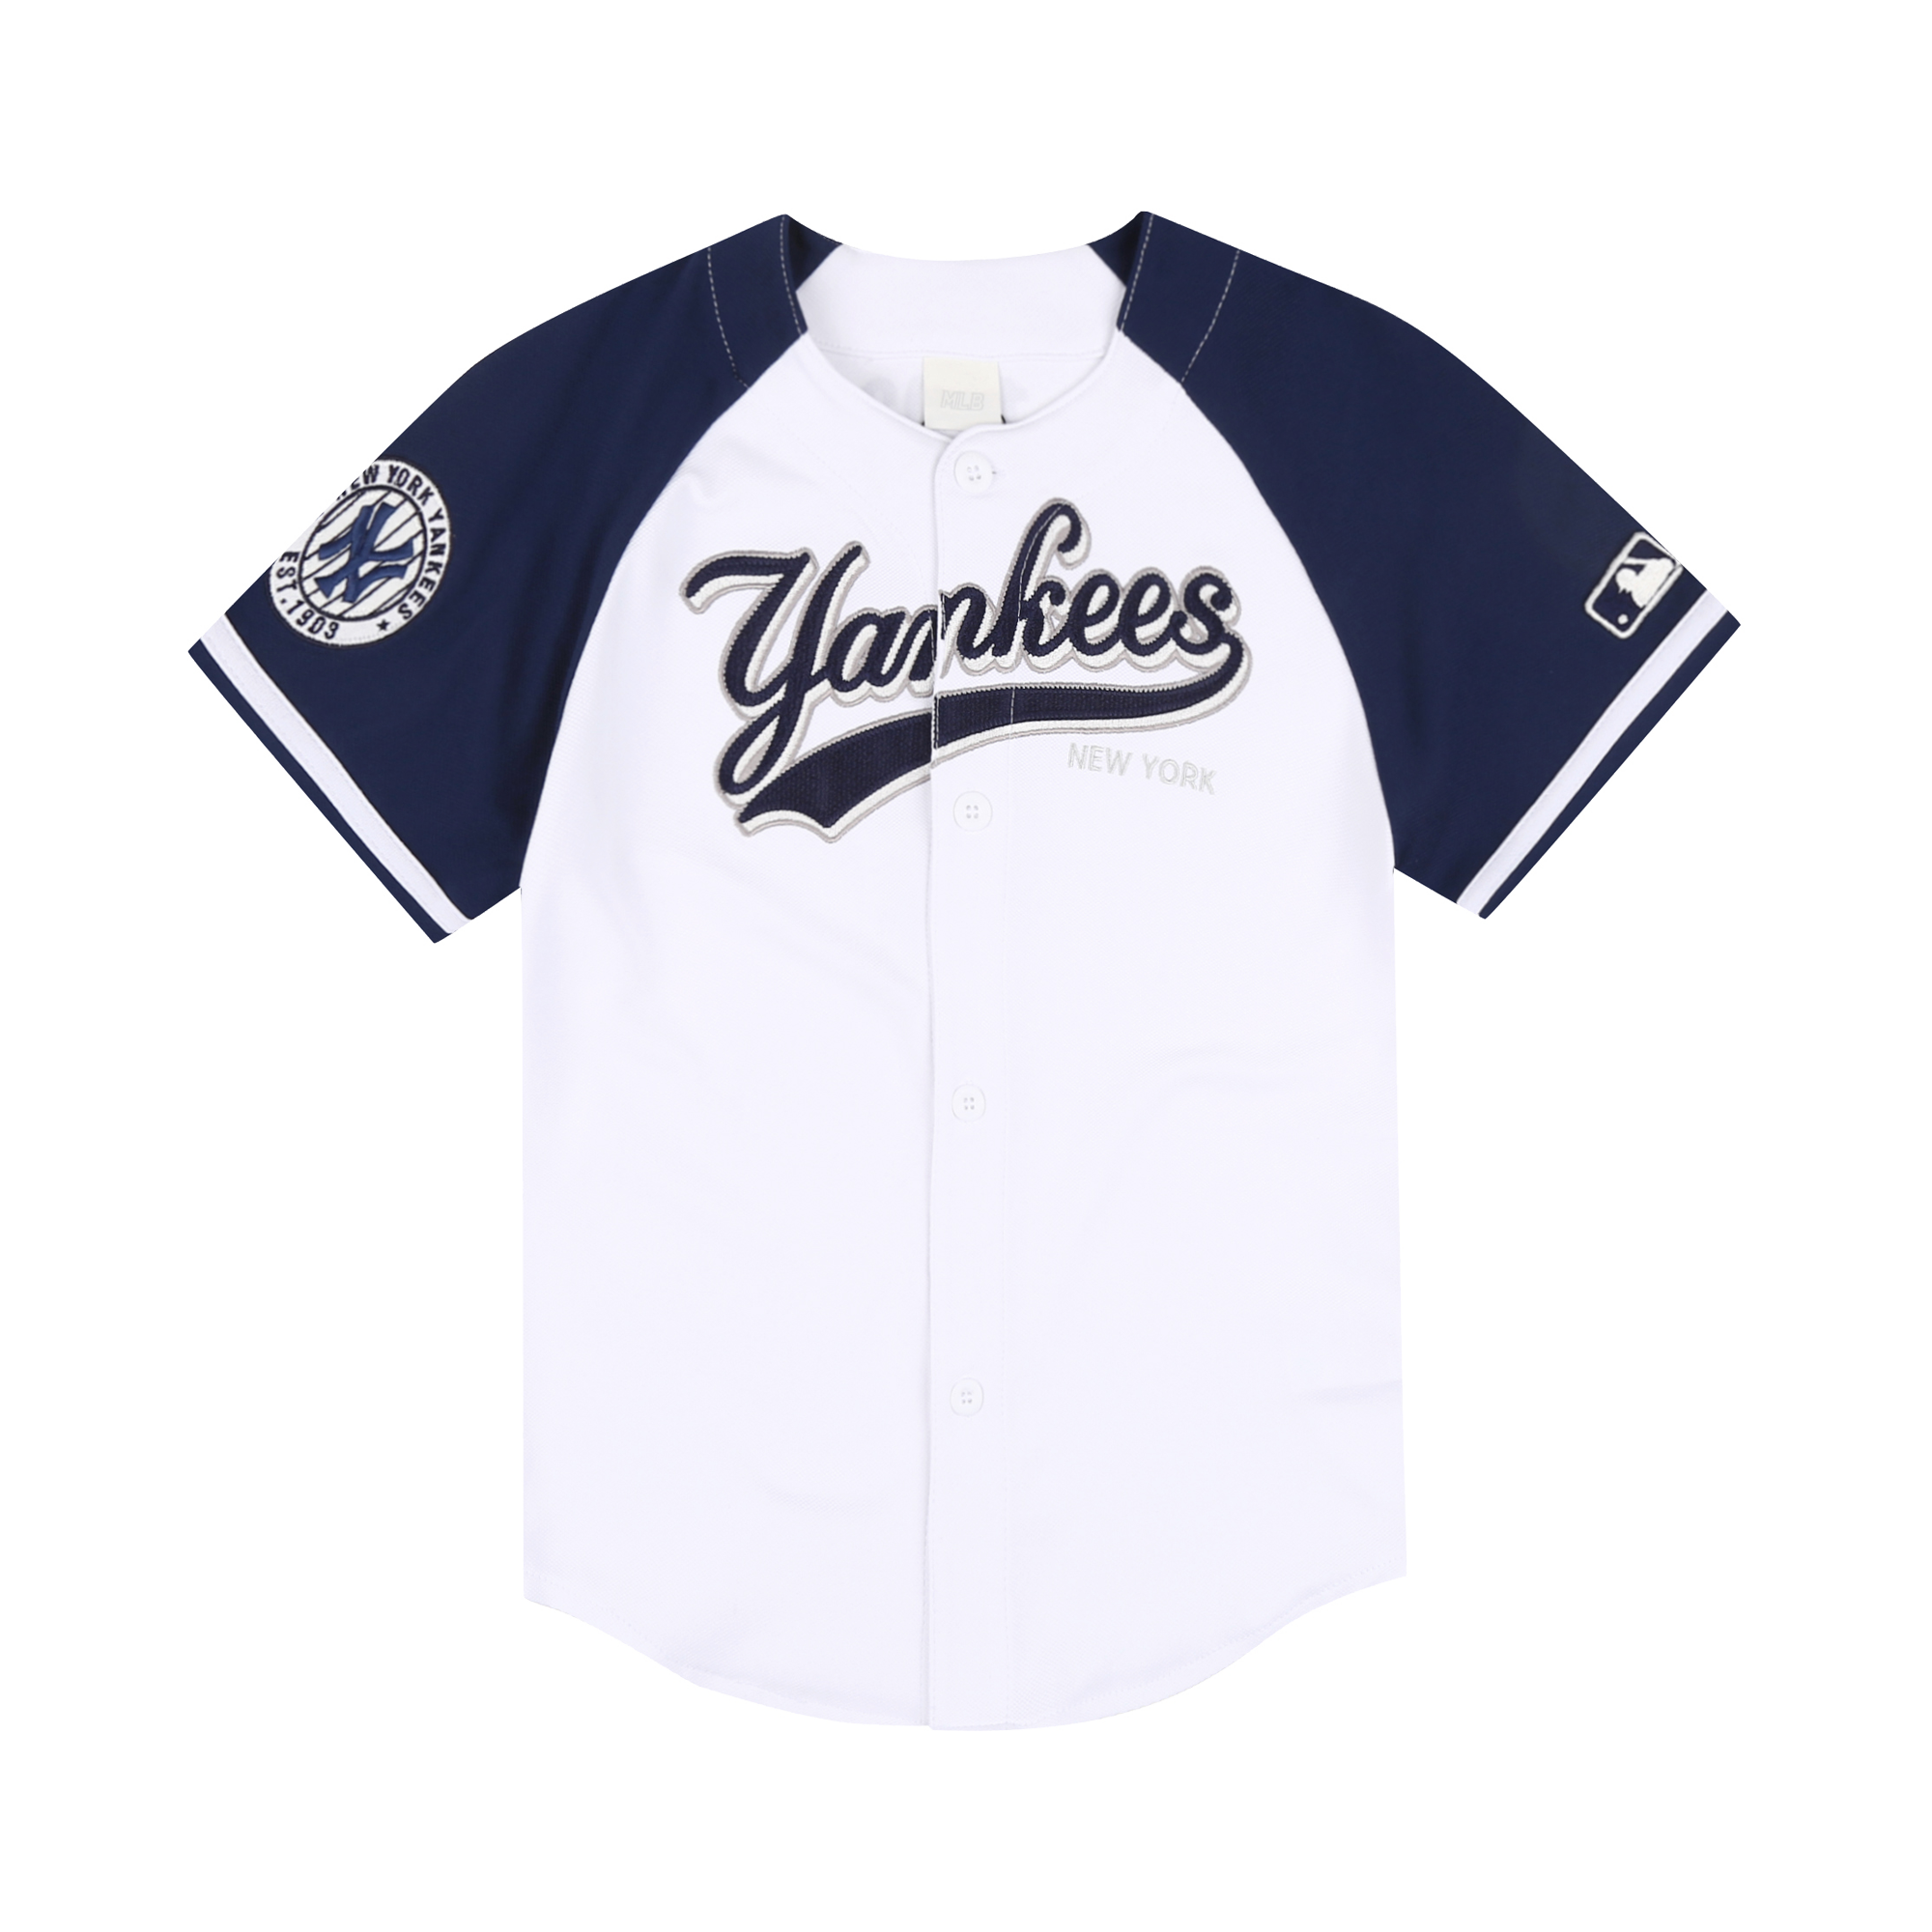 NEW YORK YANKEES UNISEX SIGNATURE BASEBALL JERSEY